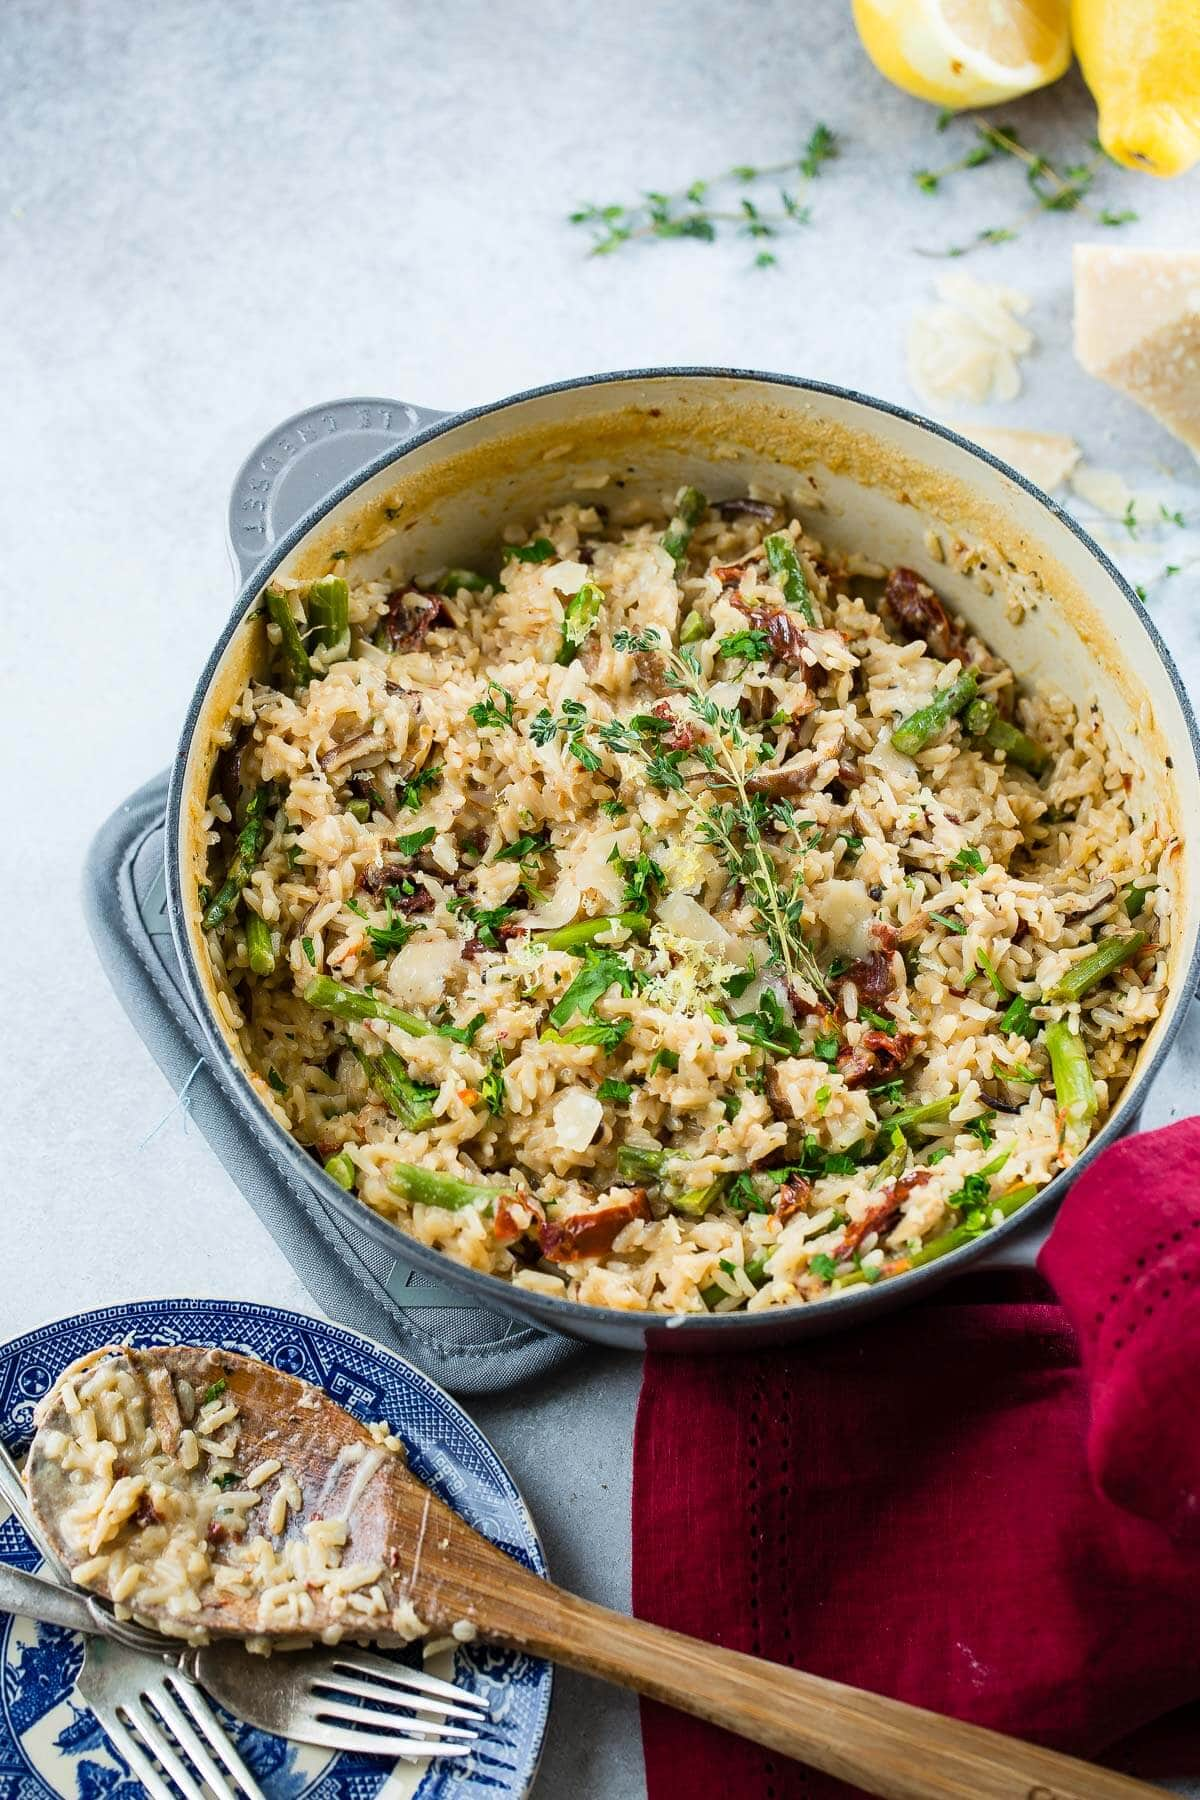 Making sides for thanksgiving or any holiday can be overwhelming but this make ahead one pot creamy winter asiago cheese rice is not only a great side, it's leftovers can be used to make a whole new dish! ohsweetbasil.com